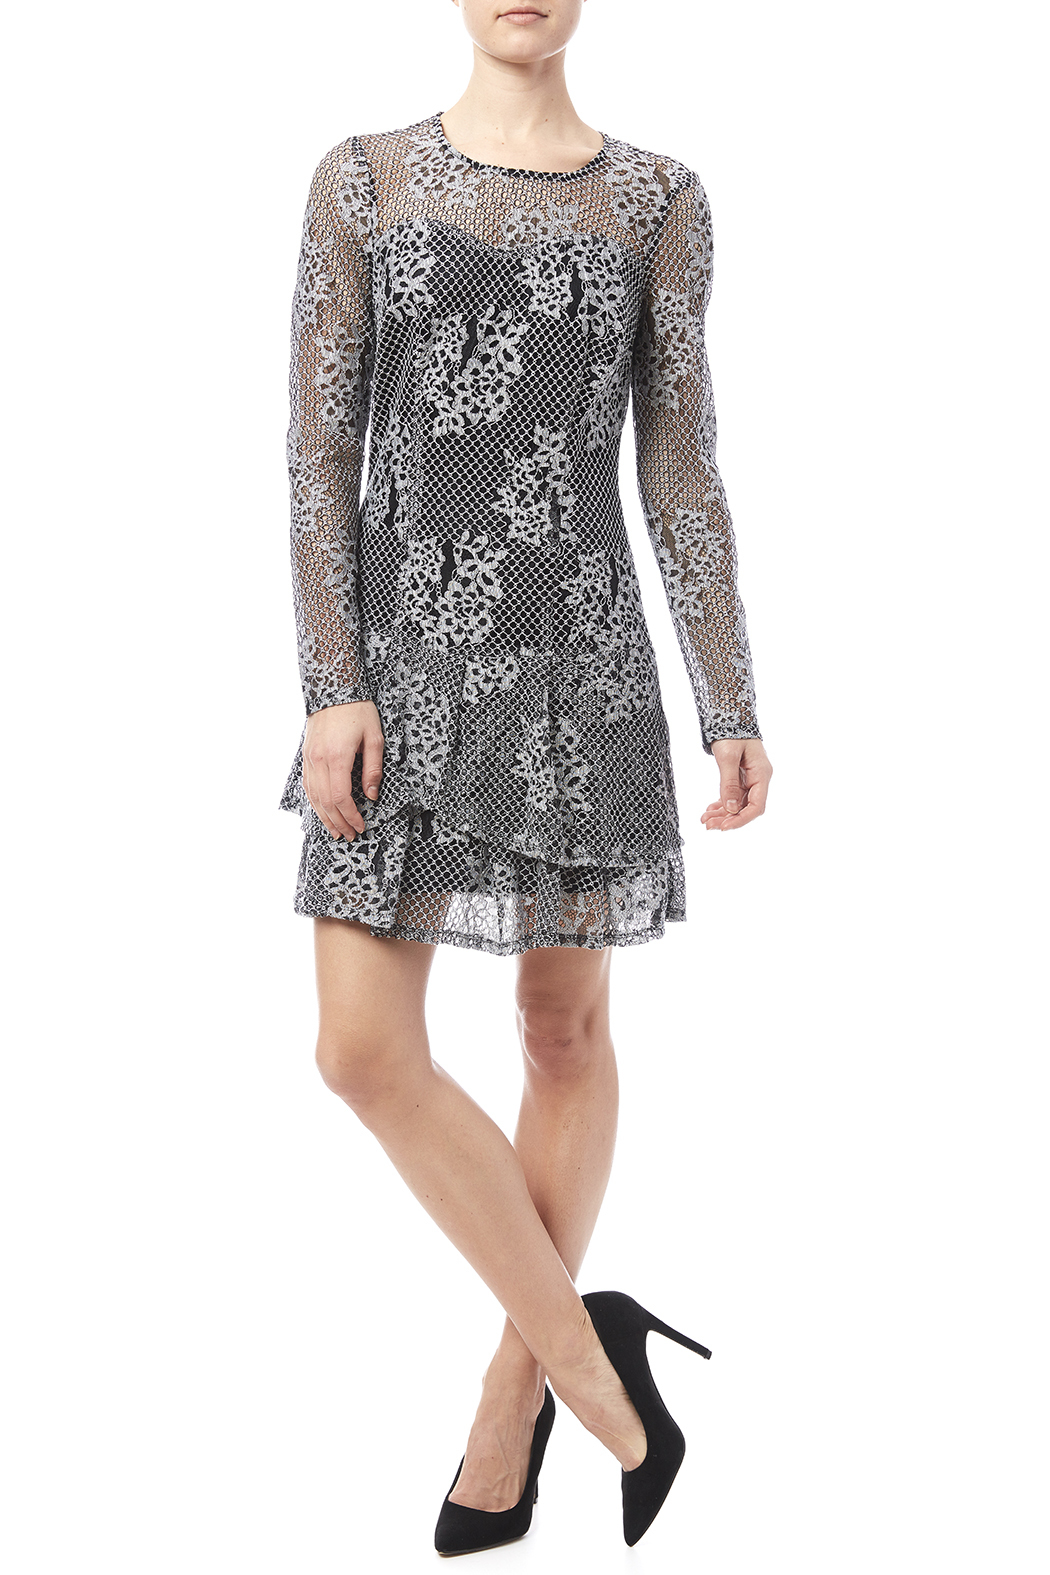 Kut from the Kloth Lace Flare Dress - Front Full Image